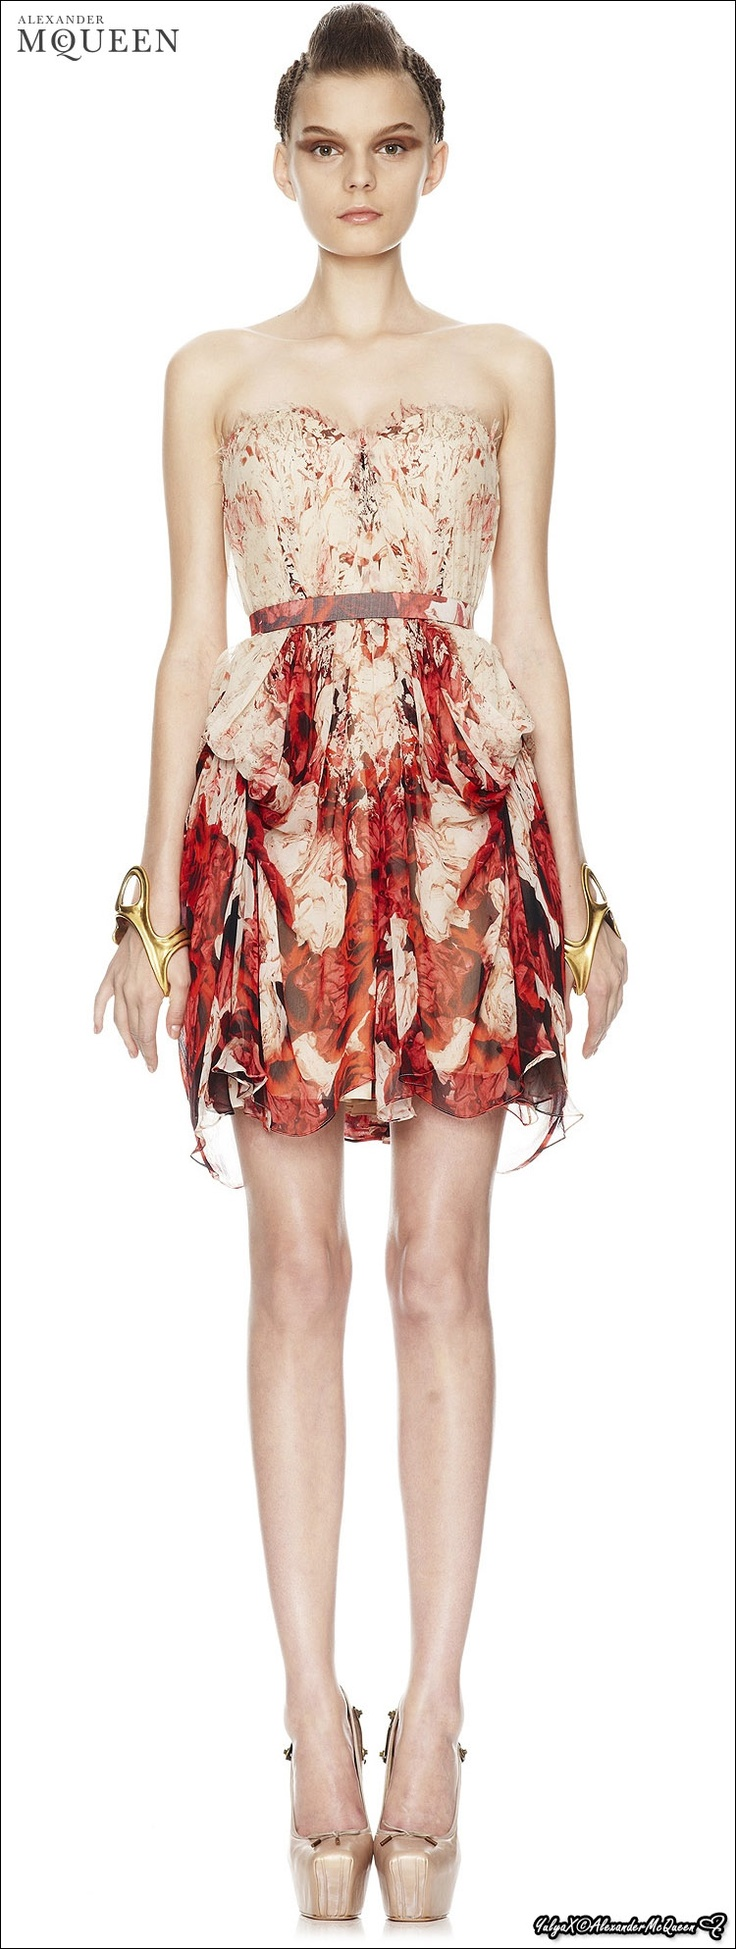 Alexander Mcqueen Spring 2010 Lookbook 06 Yulia Leontieva Red Flesh Pinterest Traje Y